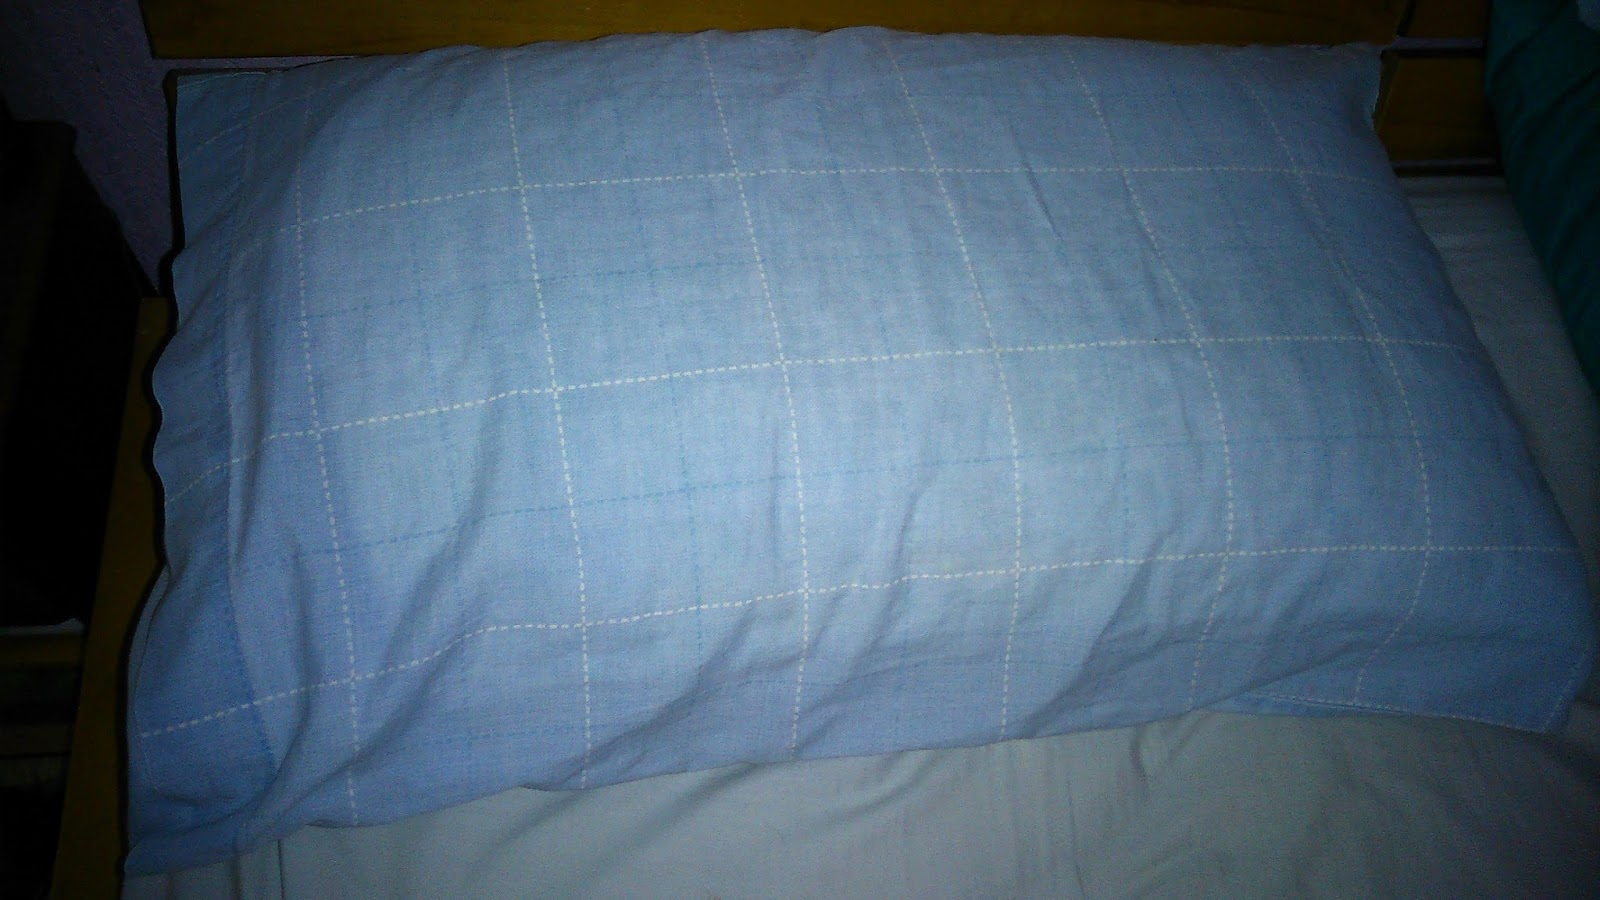 Slumberdown Traditional Memory Foam Pillow Review : Slumberdown Mem-Gel Pillow Review - My Three and Me